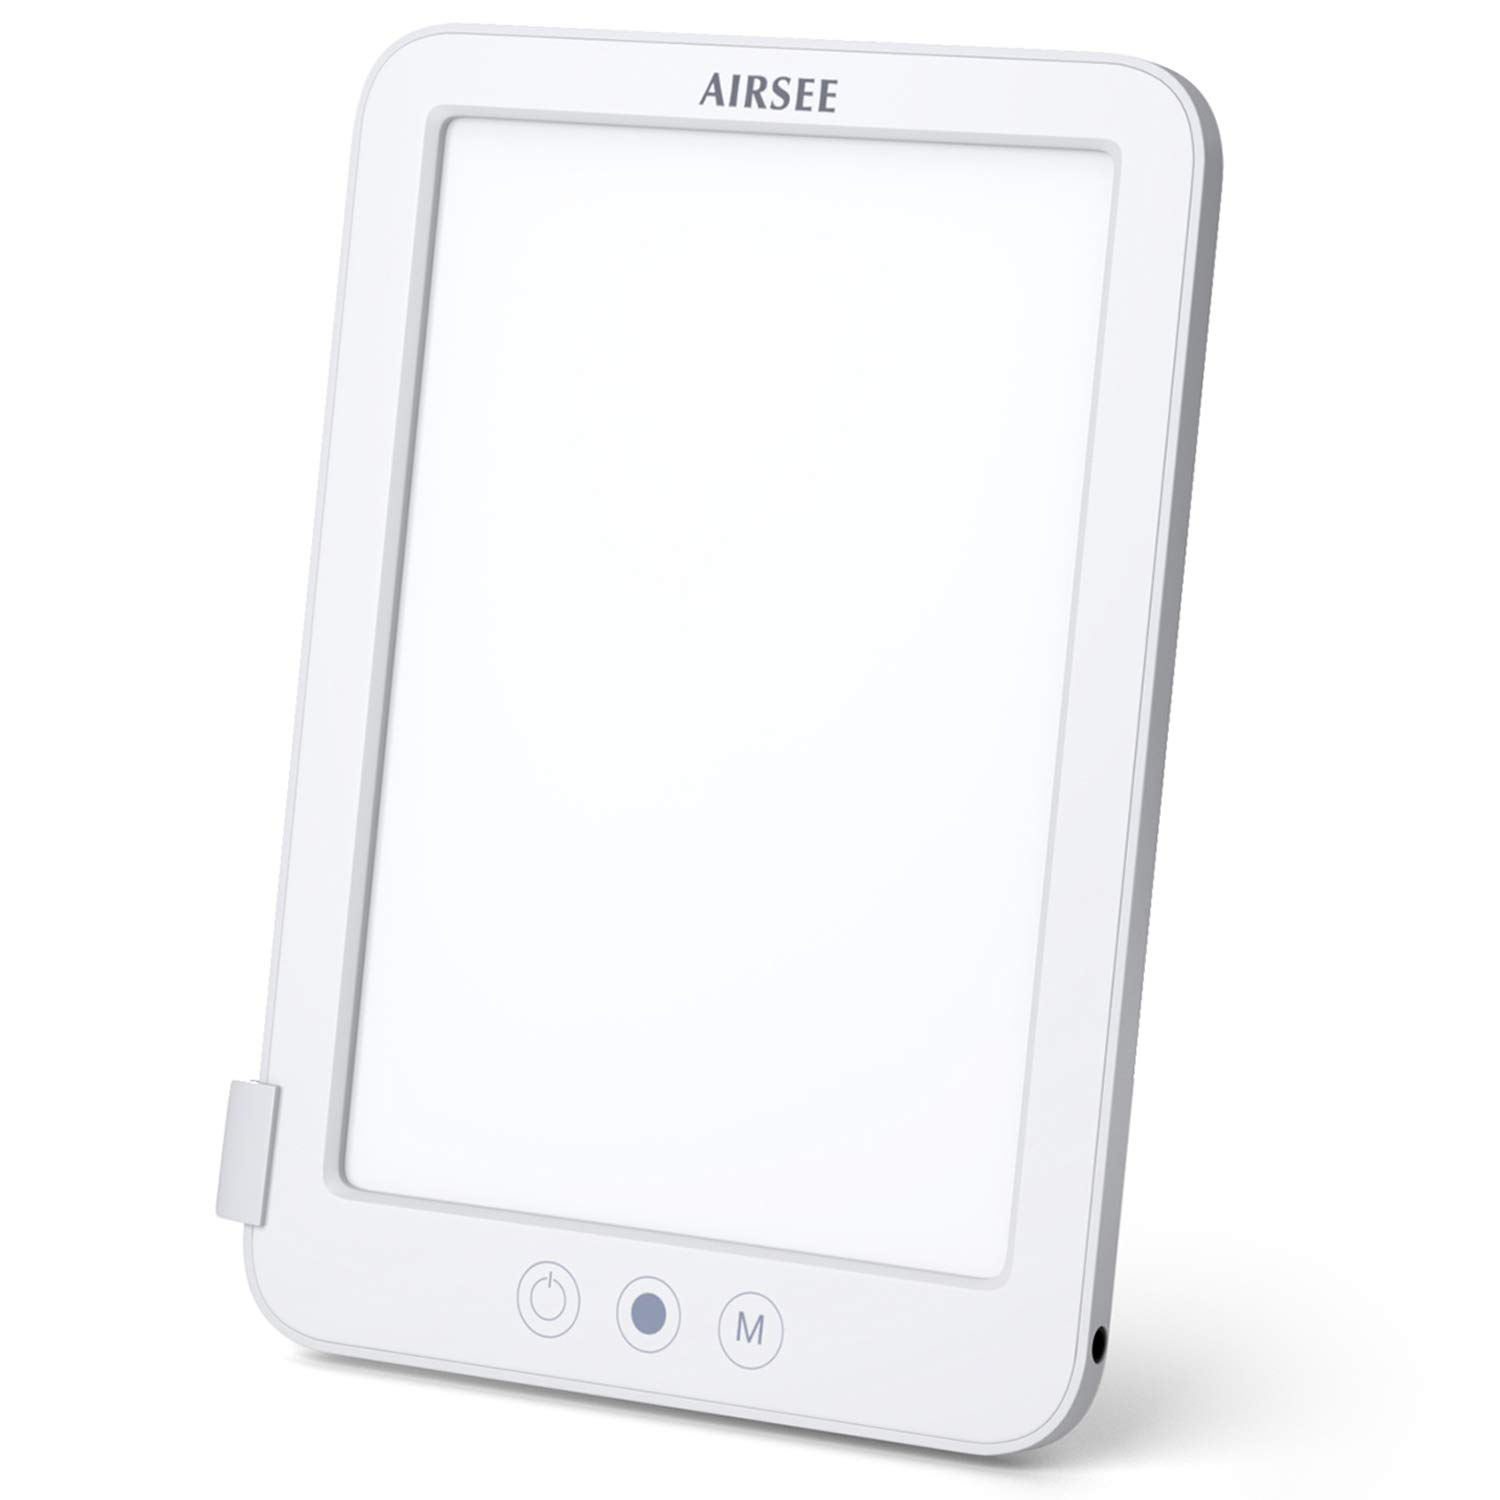 AIRSEE Light Therapy Lamp - HappyLight Lamp with 10000 lux LED and 3 Adjustable Color, Tablet Size and Brightness Controls (White)